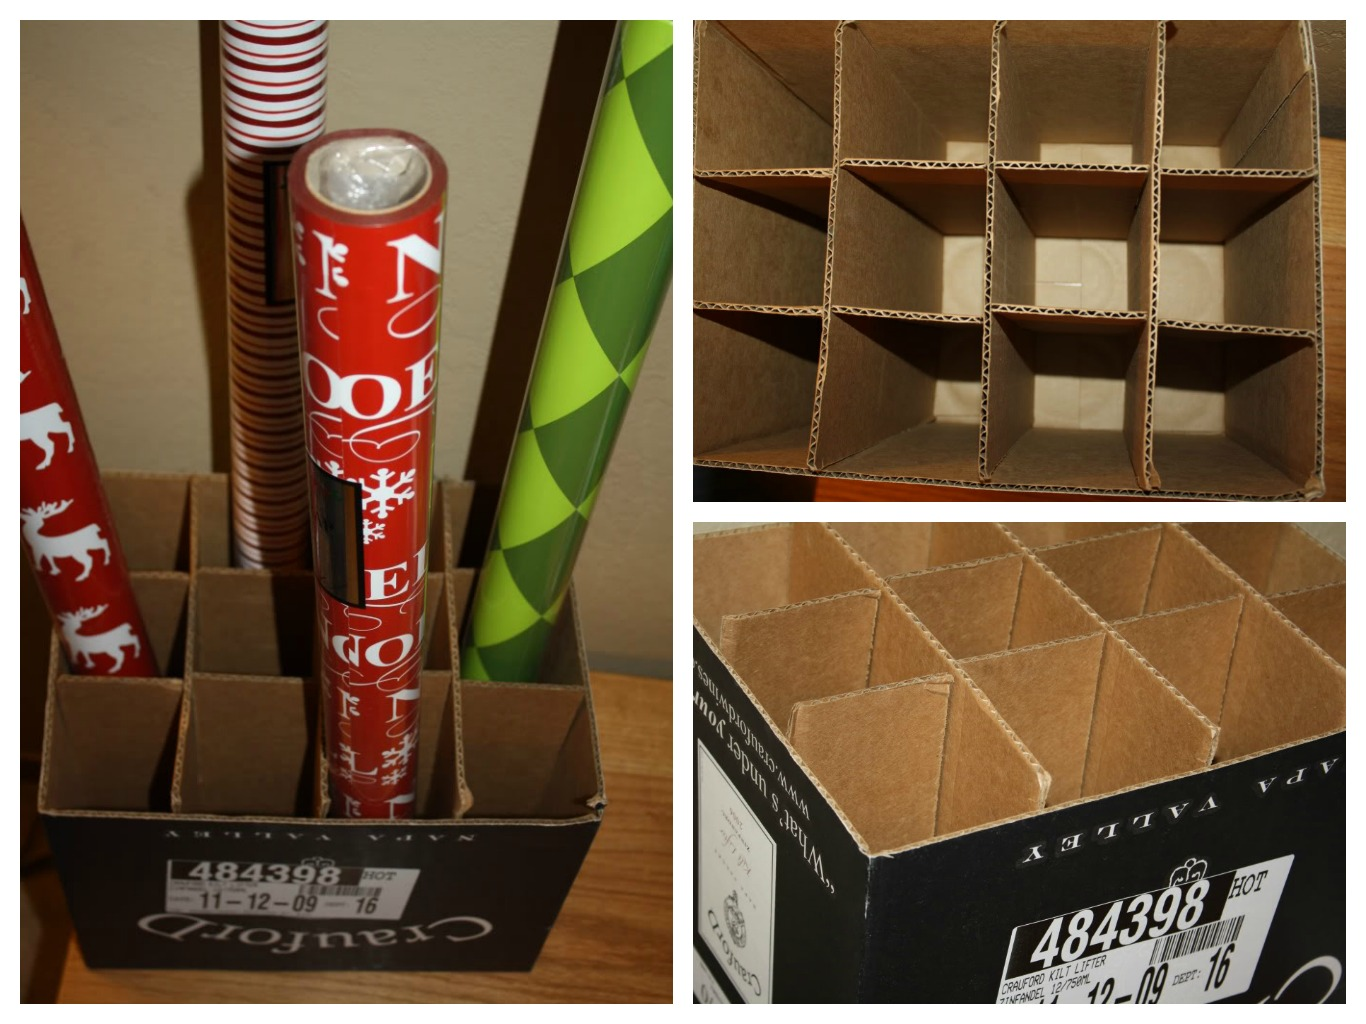 wrapping paper storage box 1-16 of over 2,000 results for wrapping paper storage box customers ultimately bought best selling • lowest priced whitmor clear gift wrap organizer - zippered storage for 25 rolls by whitmor $599 $ 5 99 $918 prime 36 out of 5 stars 791 top rated.